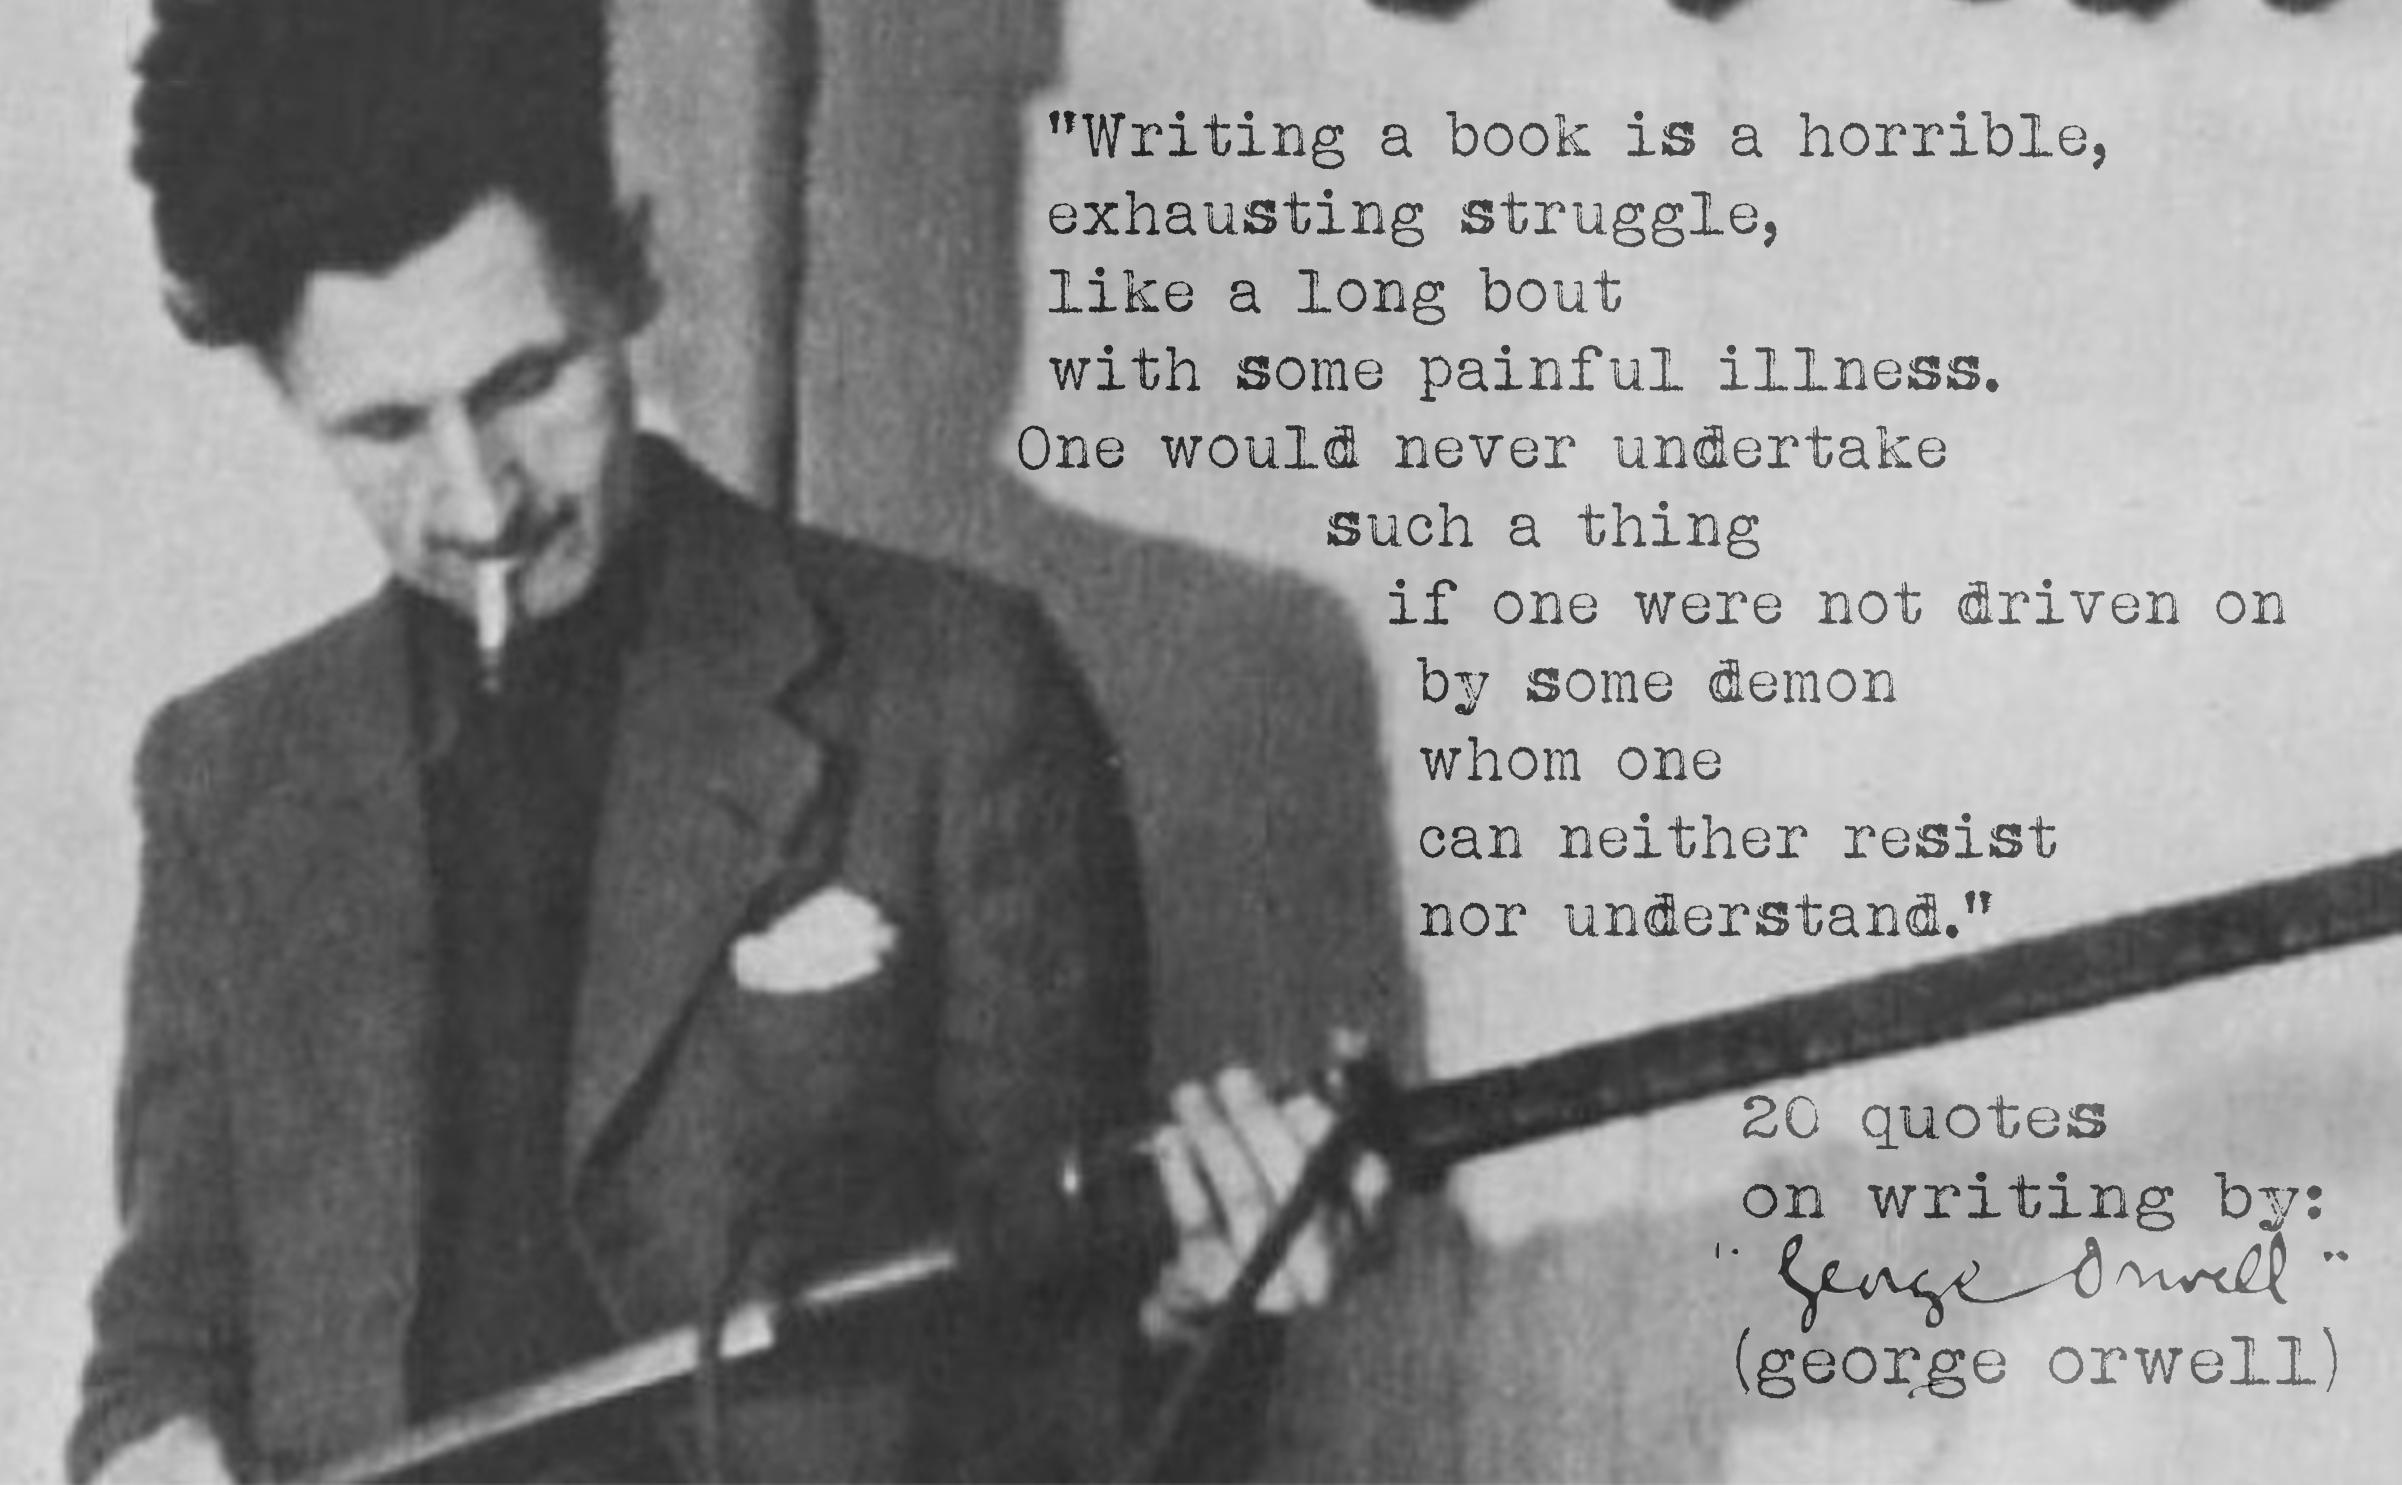 george orwell writings